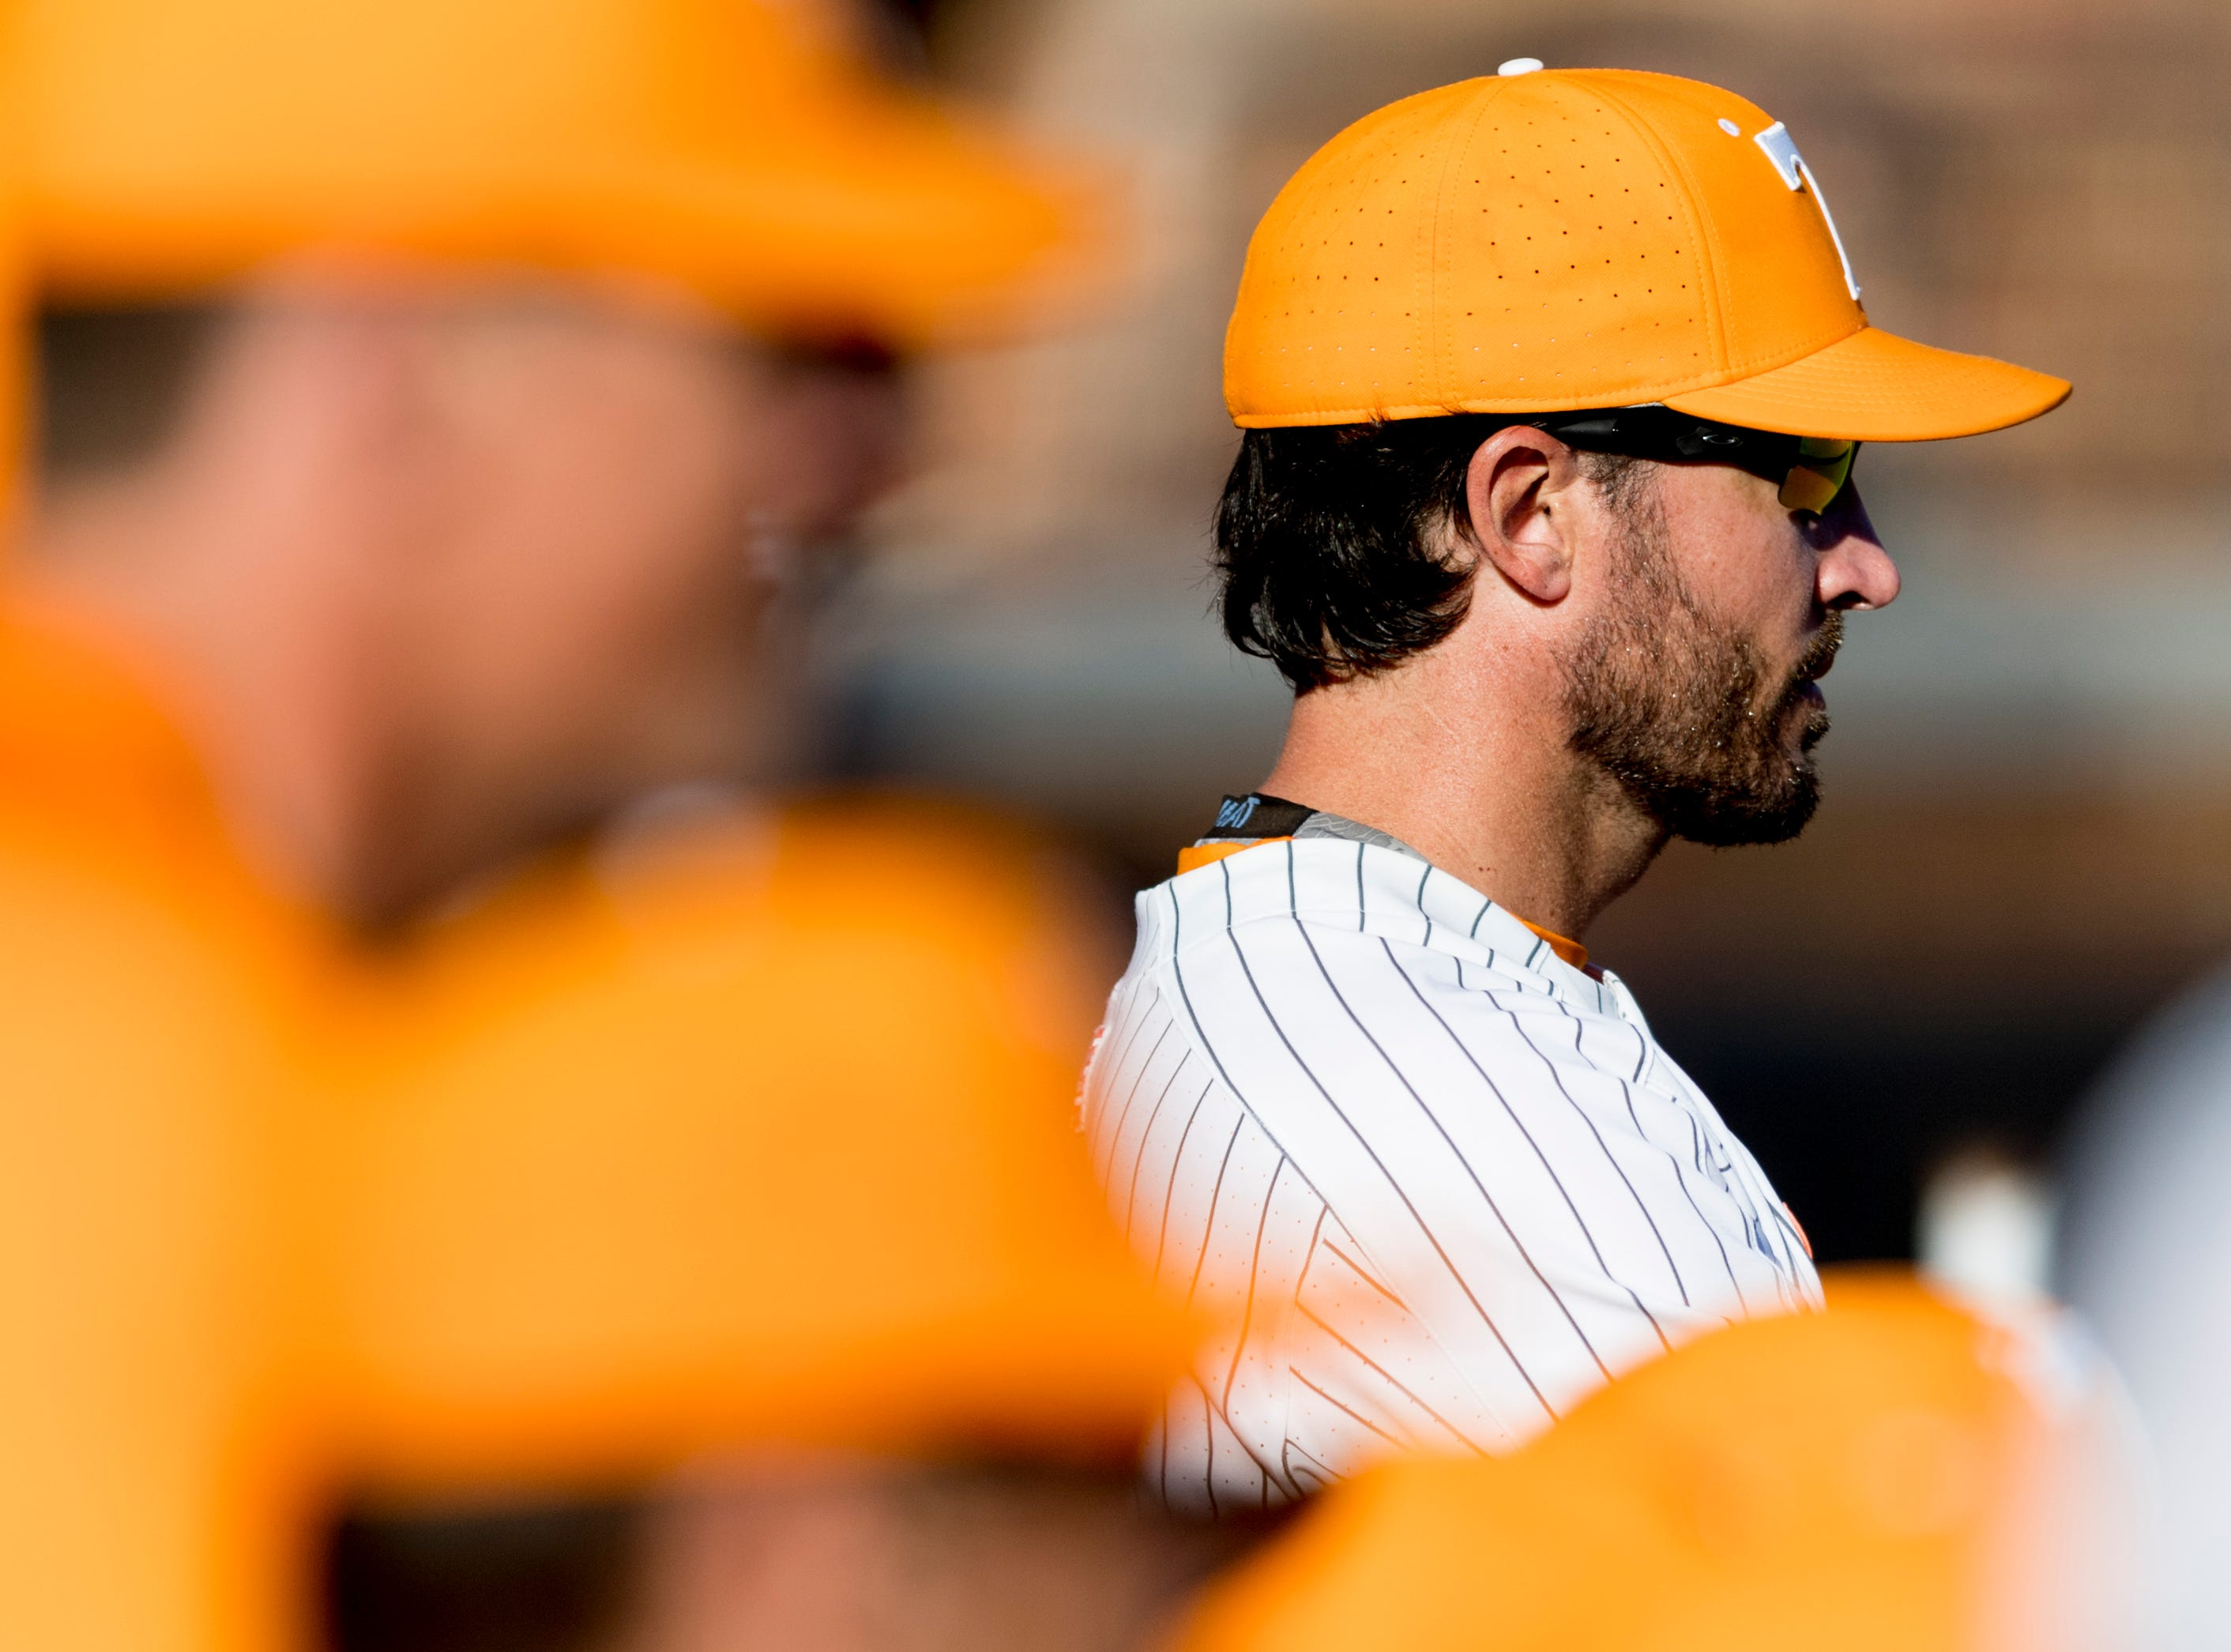 Tennessee Head Coach Tony Vitello watches the game during a game between Tennessee and ETSU at Lindsey Nelson Stadium in Knoxville, Tennessee on Friday, March 2, 2018.